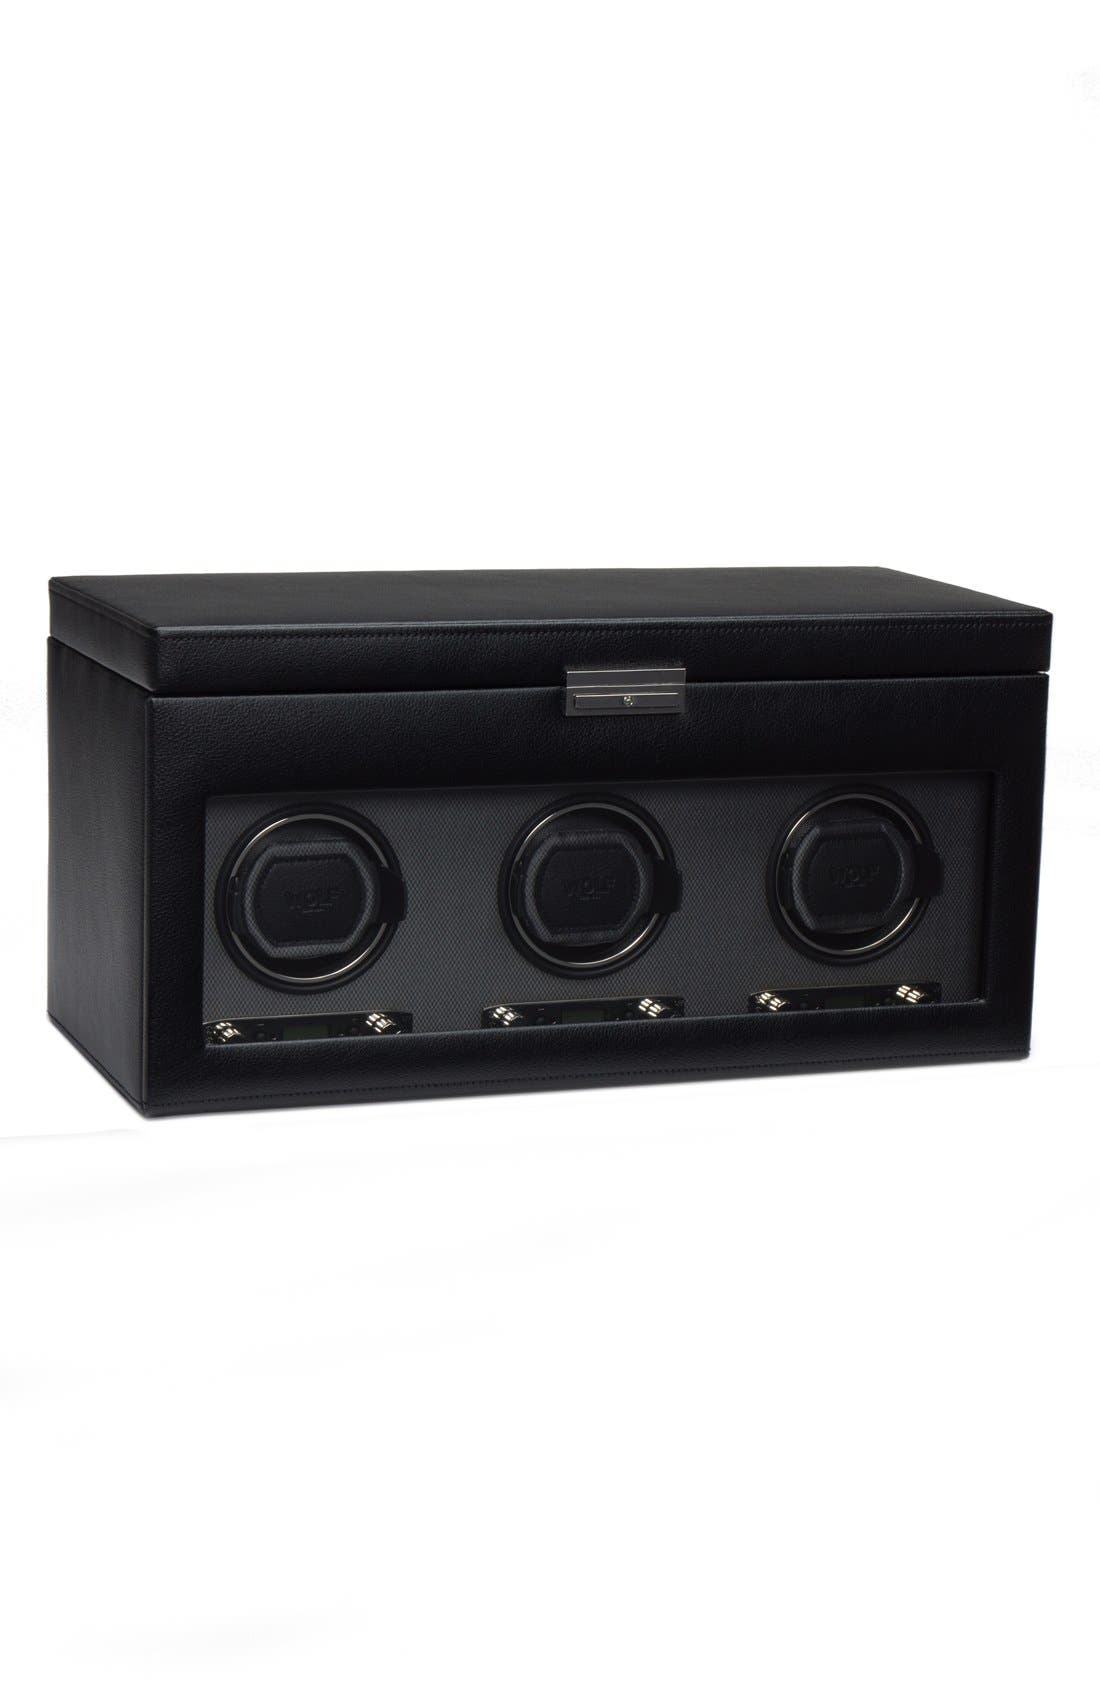 Main Image - Wolf Viceroy Triple Watch Winder & Case